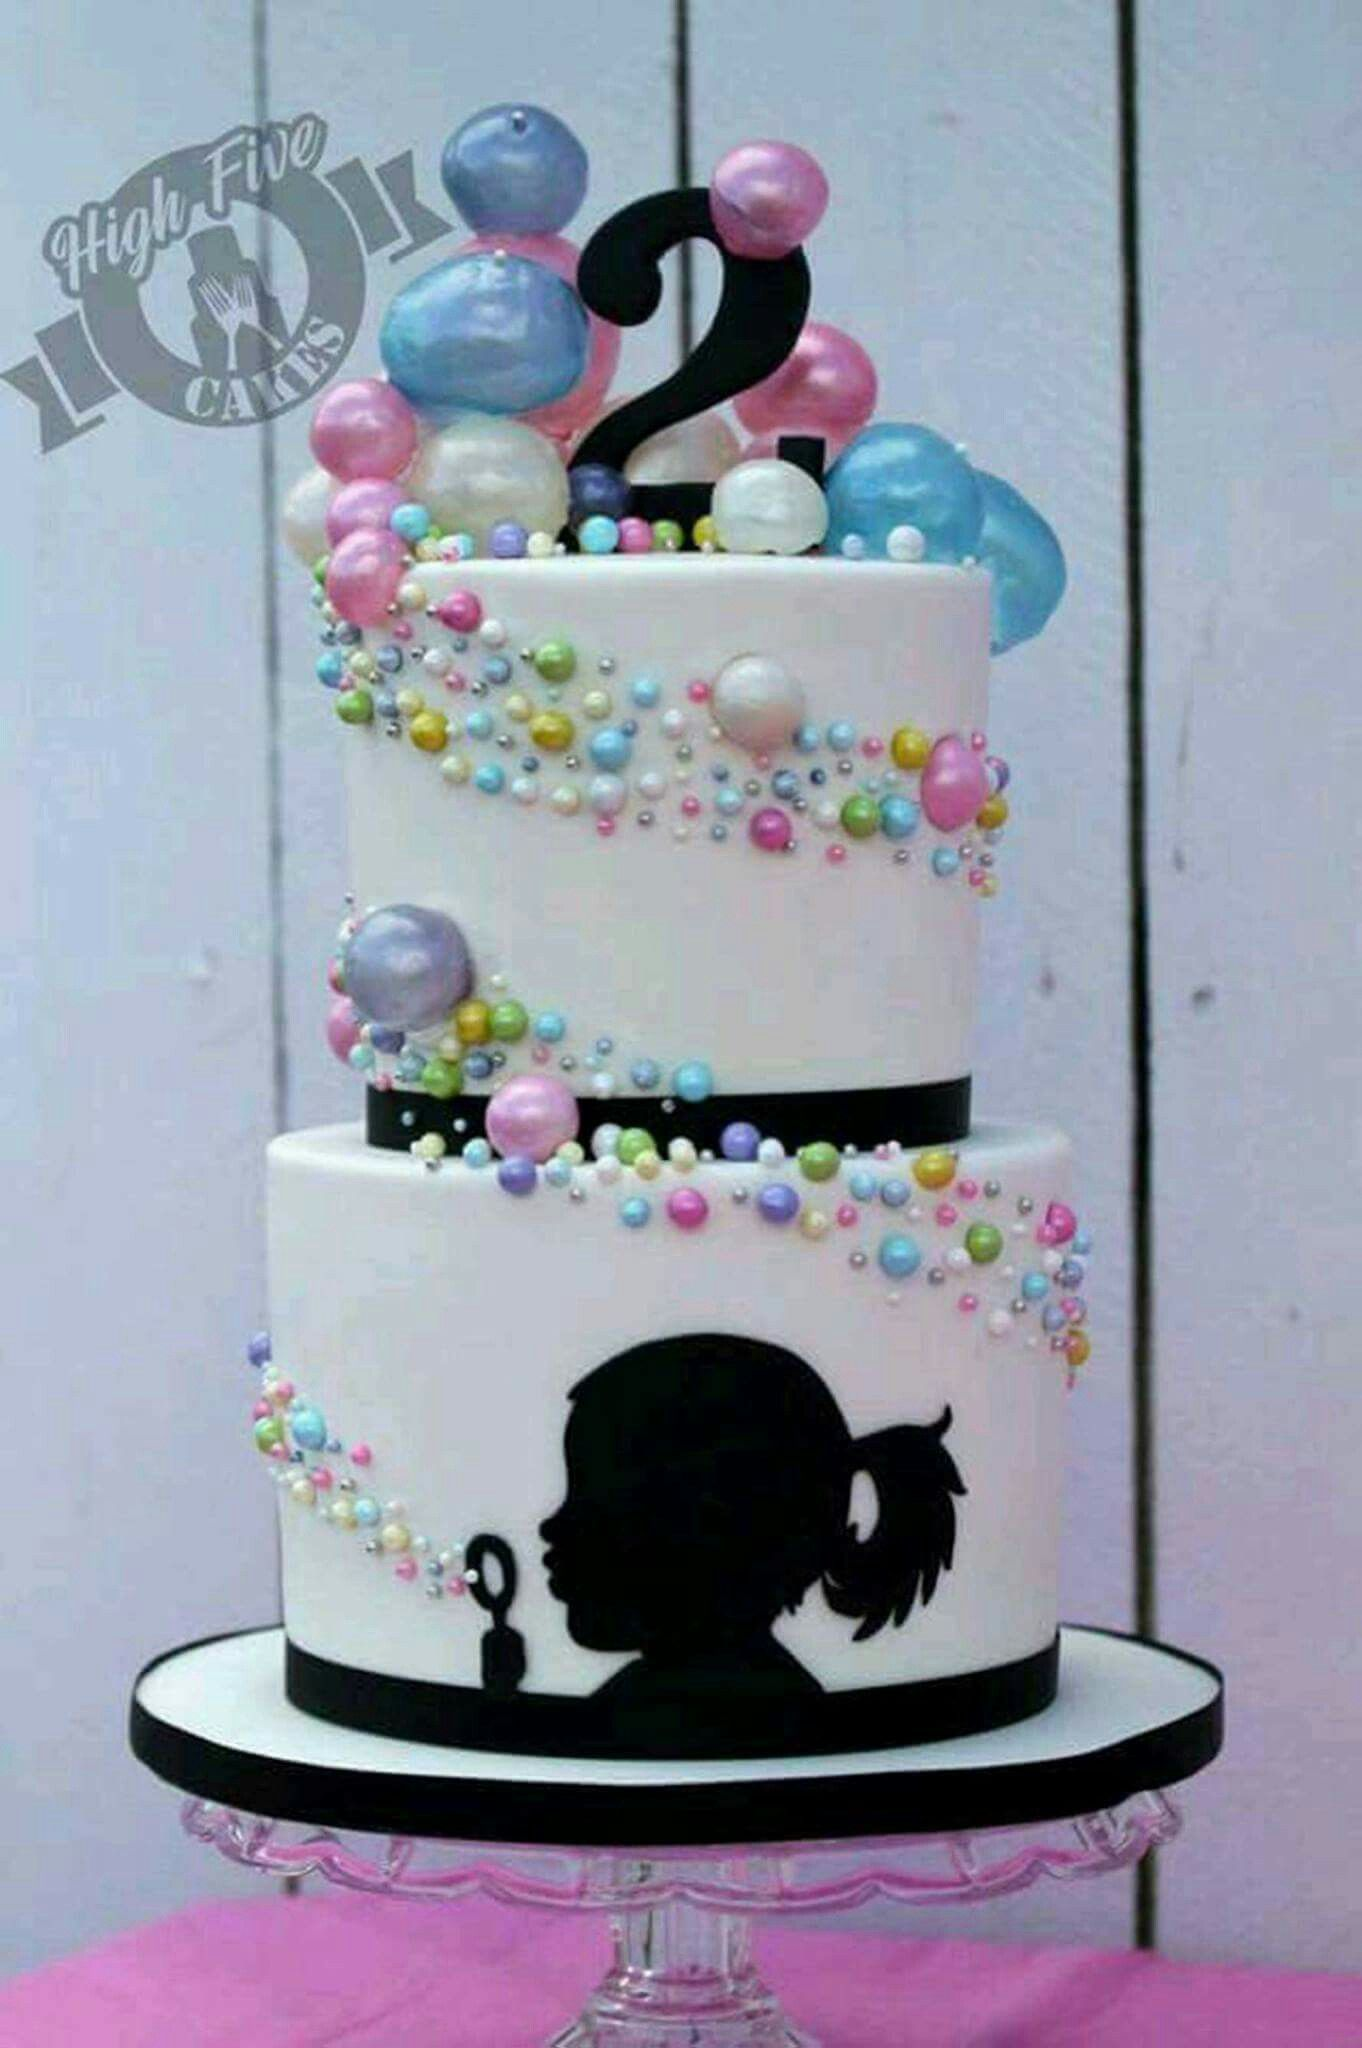 Incredible Just A Cute Picture I Saw Silhouette Cake Bubble Cake Cake Personalised Birthday Cards Paralily Jamesorg